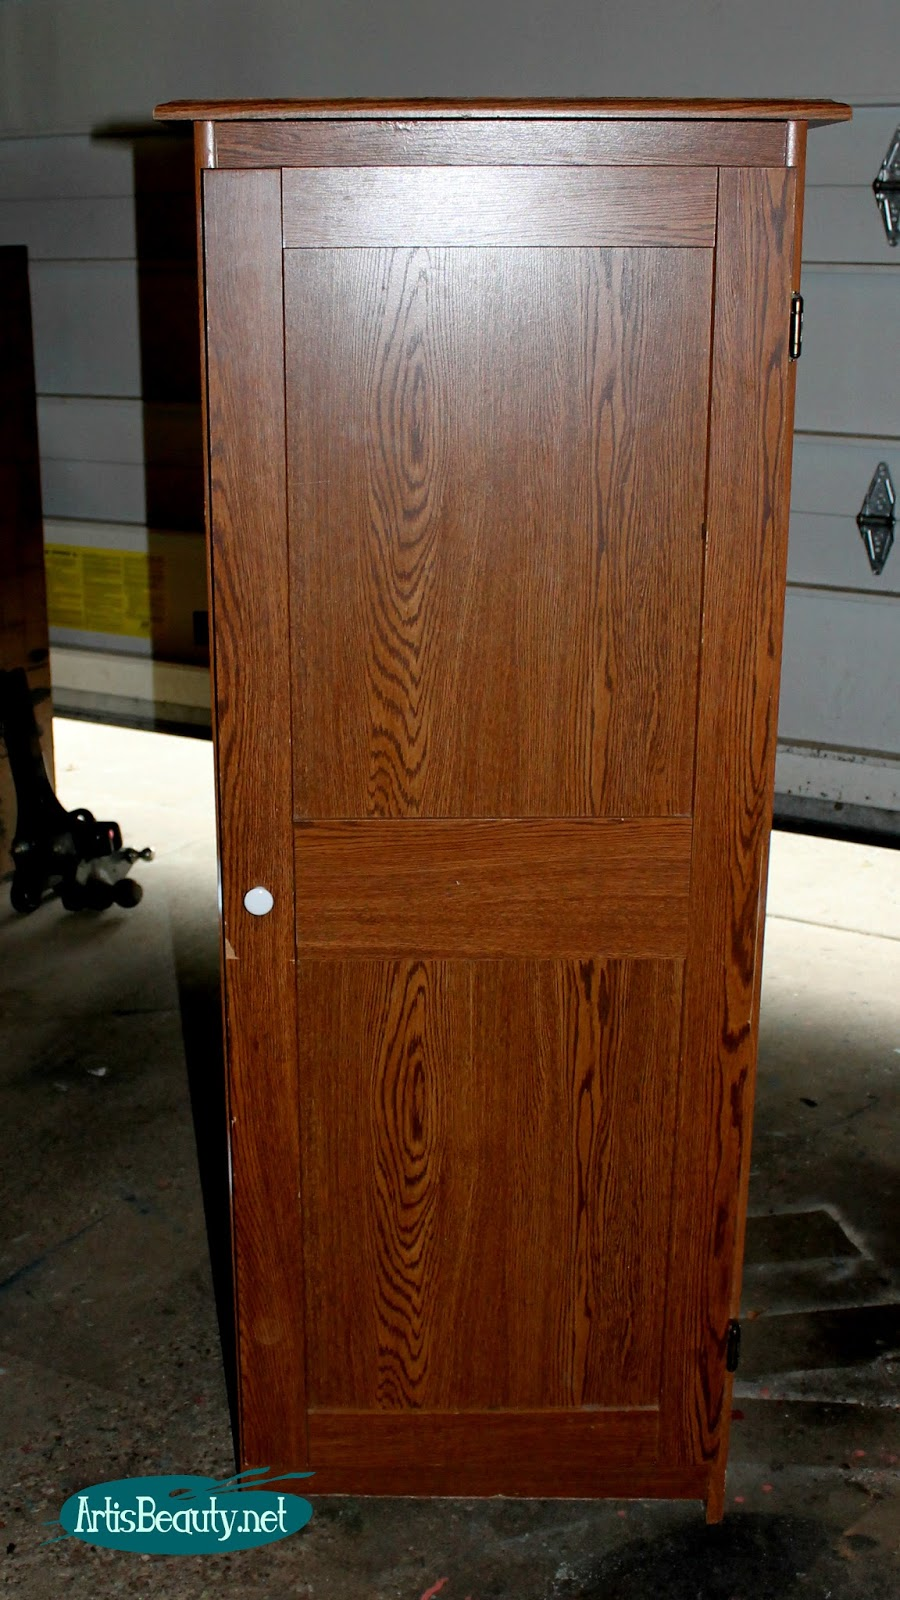 Art Is Beauty Beat Up Sauder Cabinet Turned Vintage Pantry